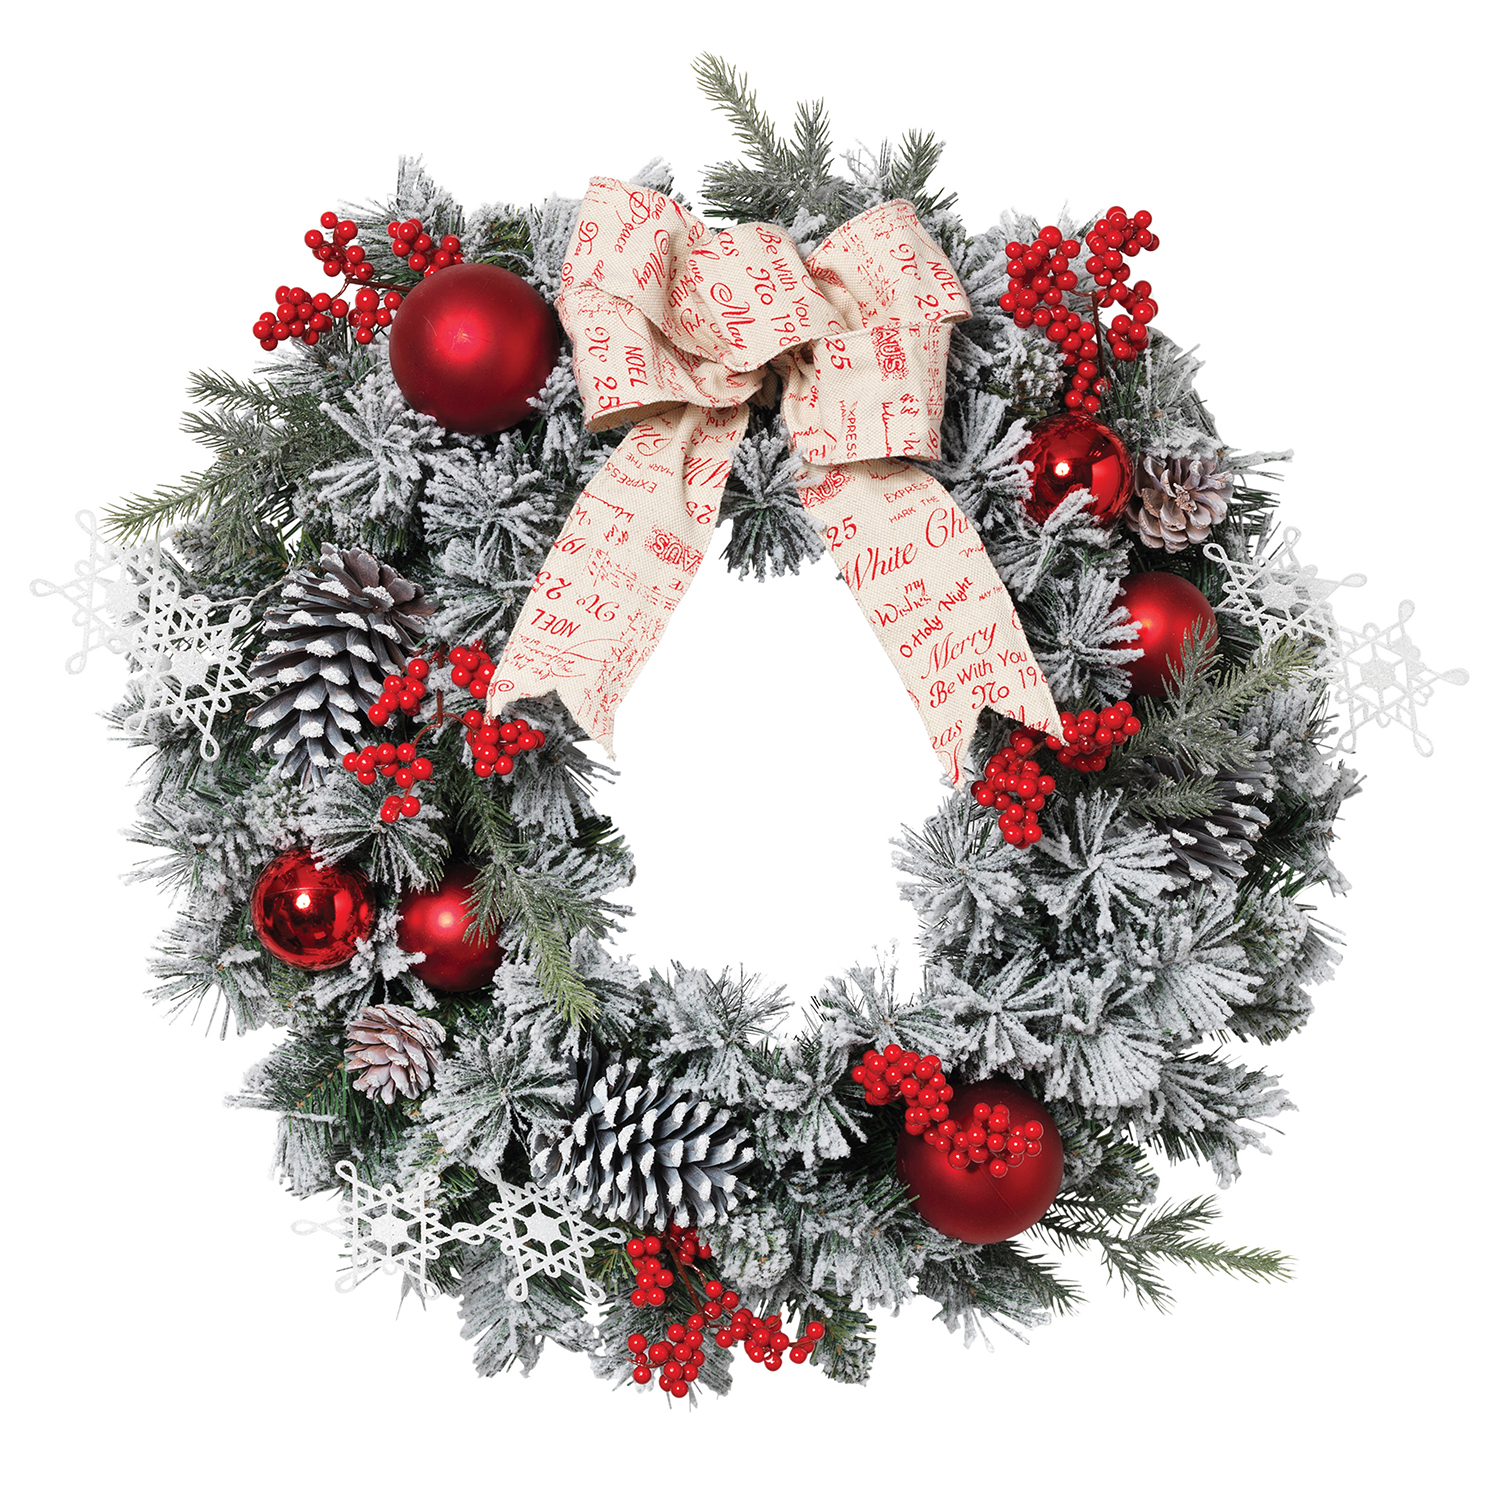 buy online 50943 4f86e Details about 24-Inch Christmas Flocked Pine Wreath With Berries Ornaments  Pine Cones Ribbon